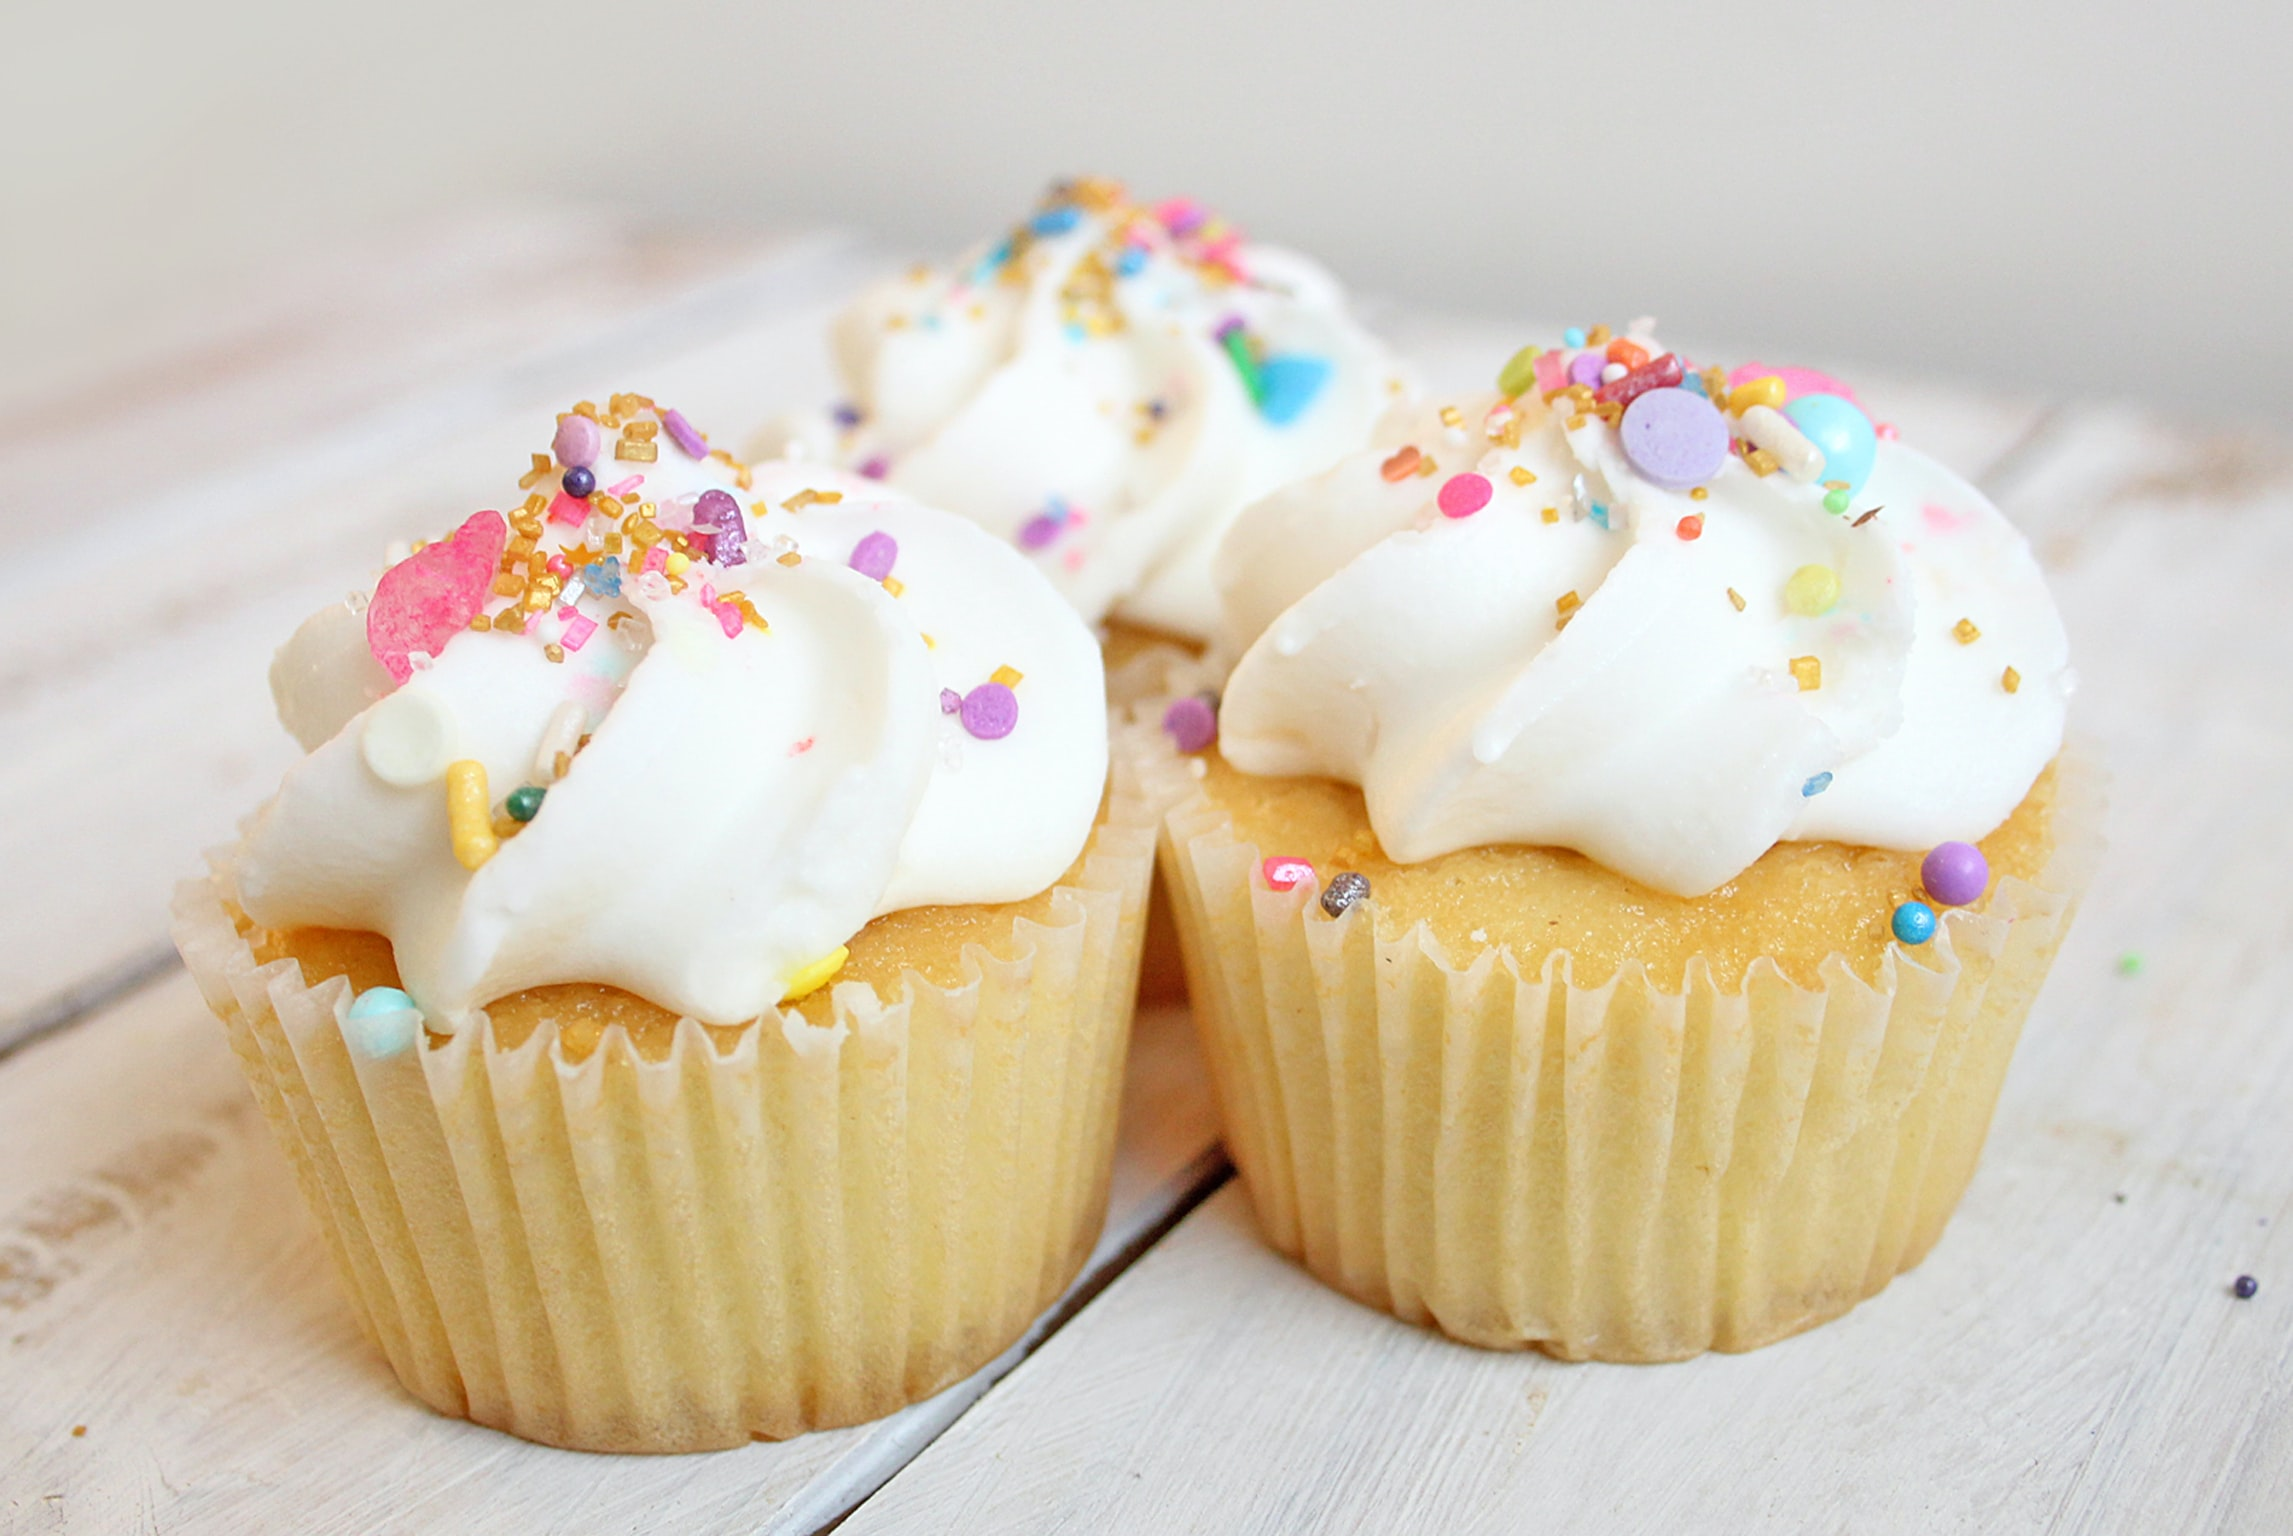 Three vanilla cupcakes with white frosting and sprinkles sit on a wooden surface.